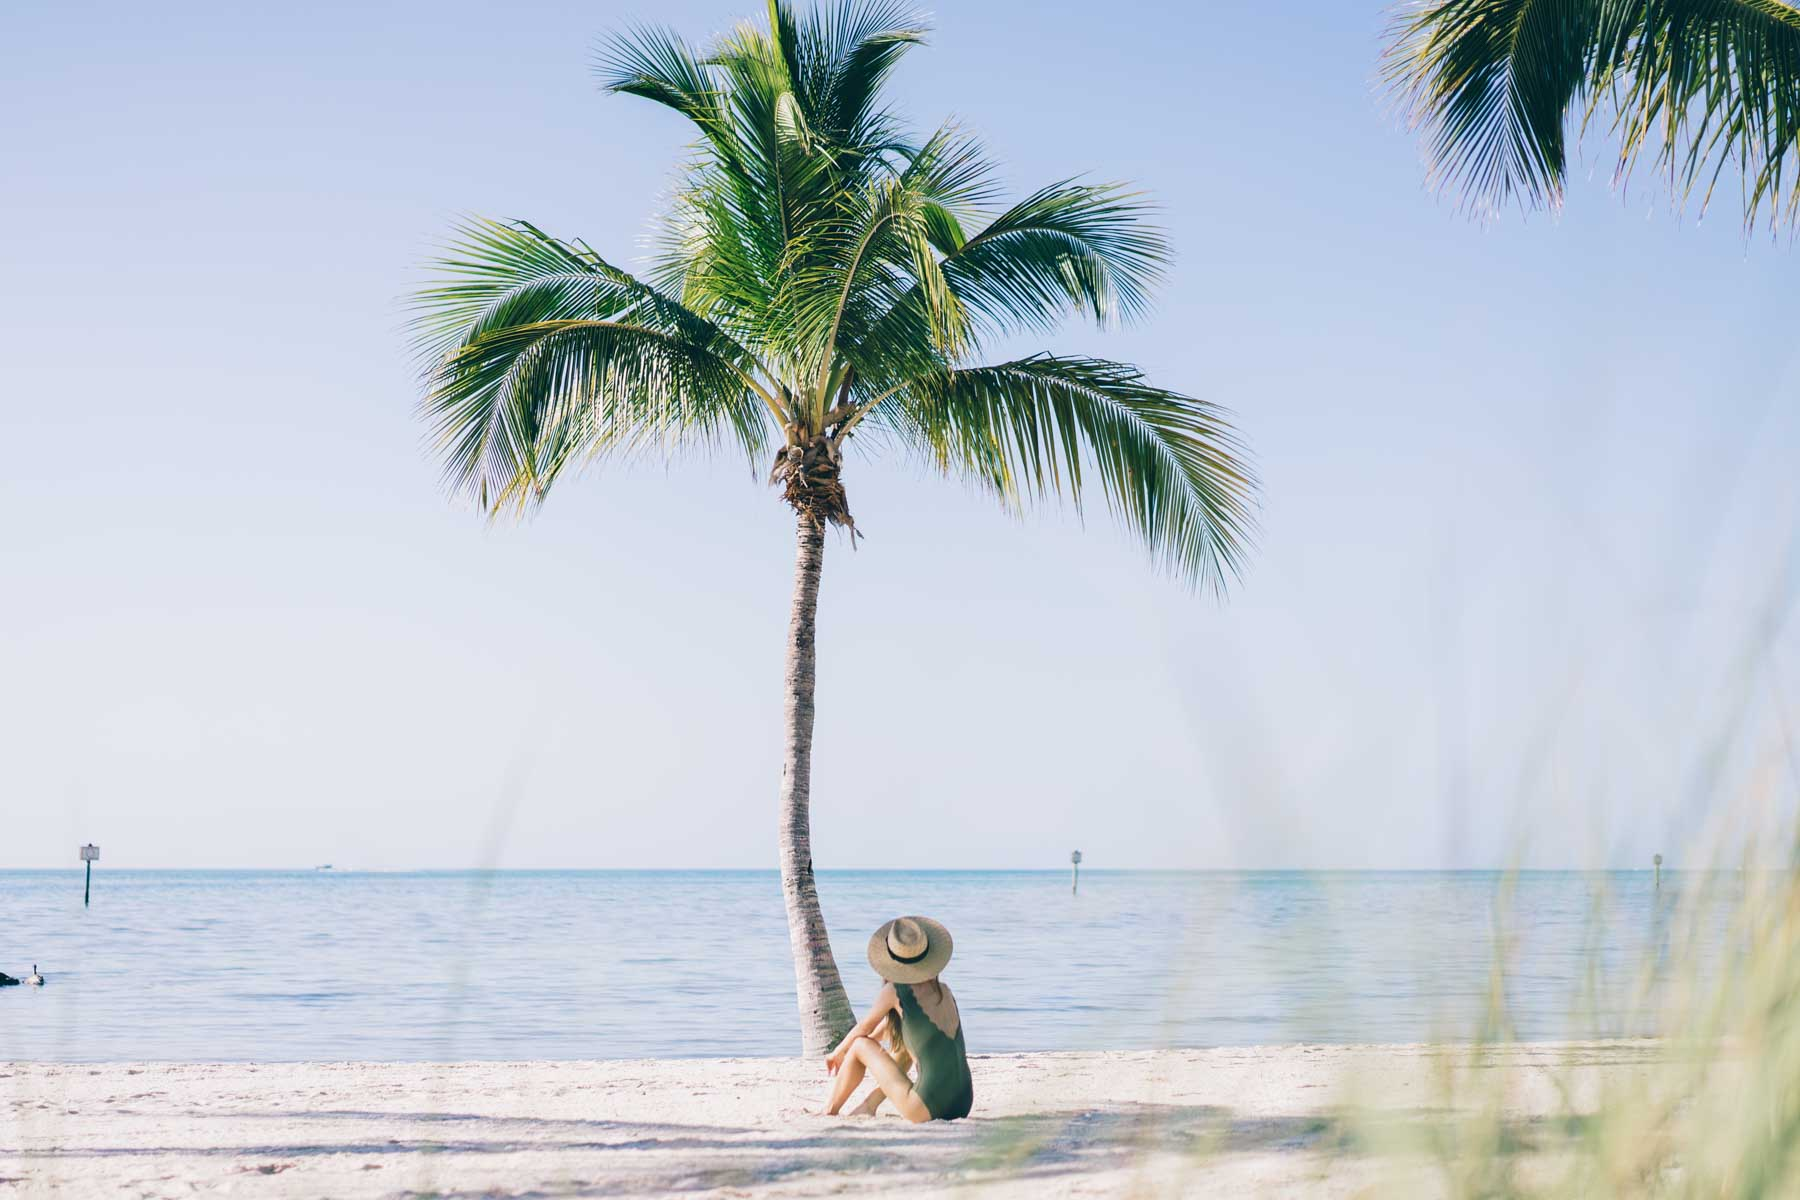 Jess Ann Kirby relaxes under the palm trees on Smathers Beach in Key West, Florida